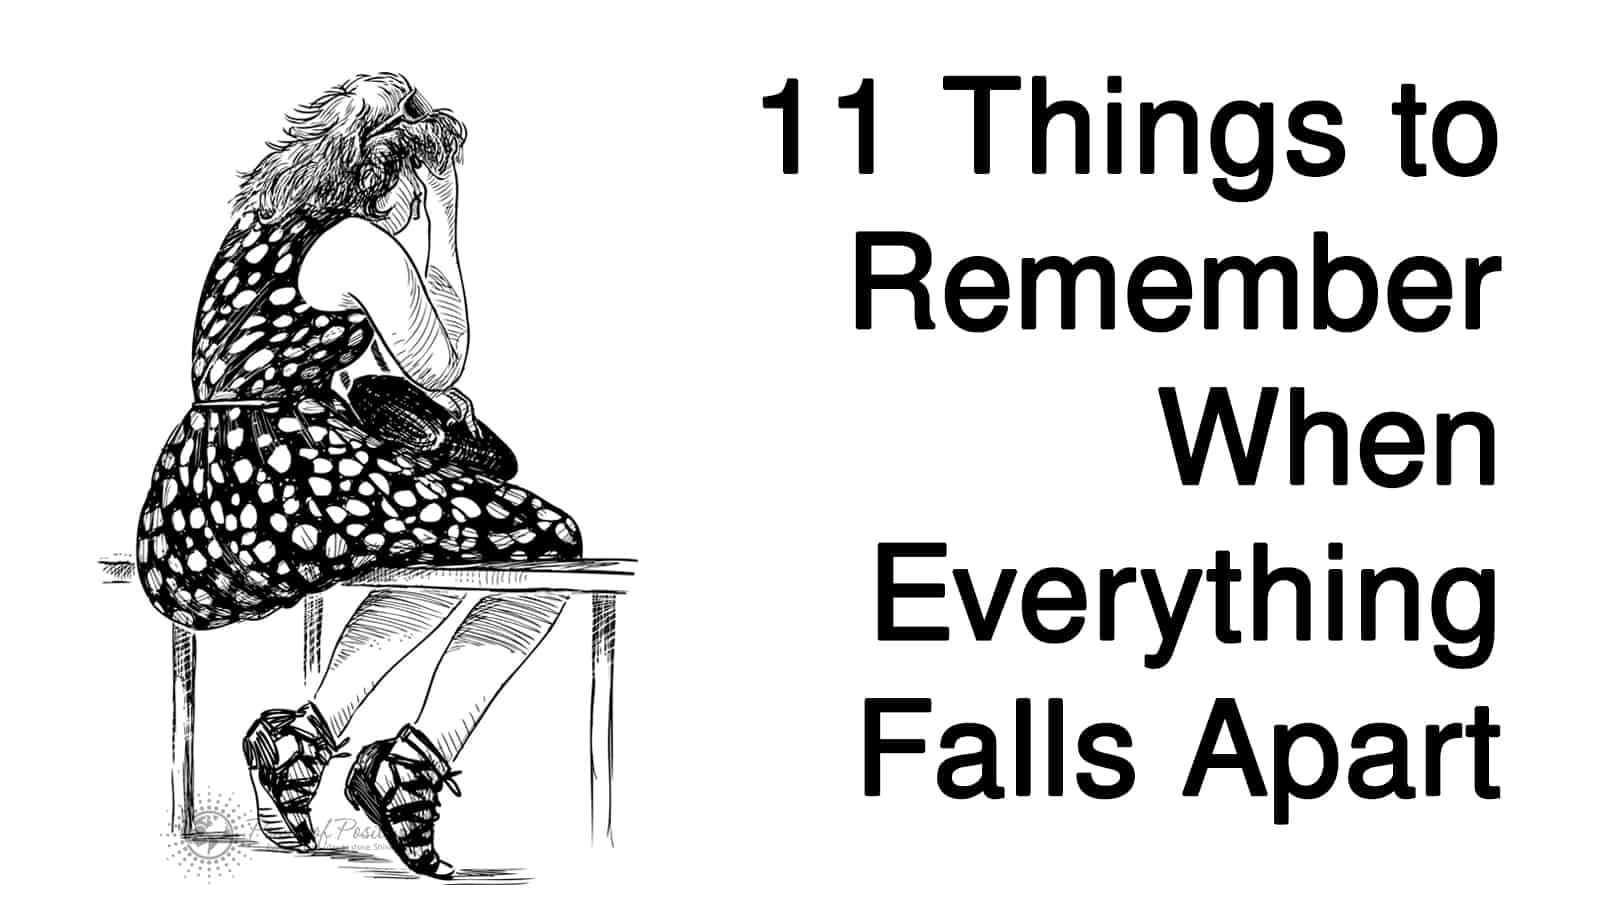 11 Things to Remember When Everything Falls Apart